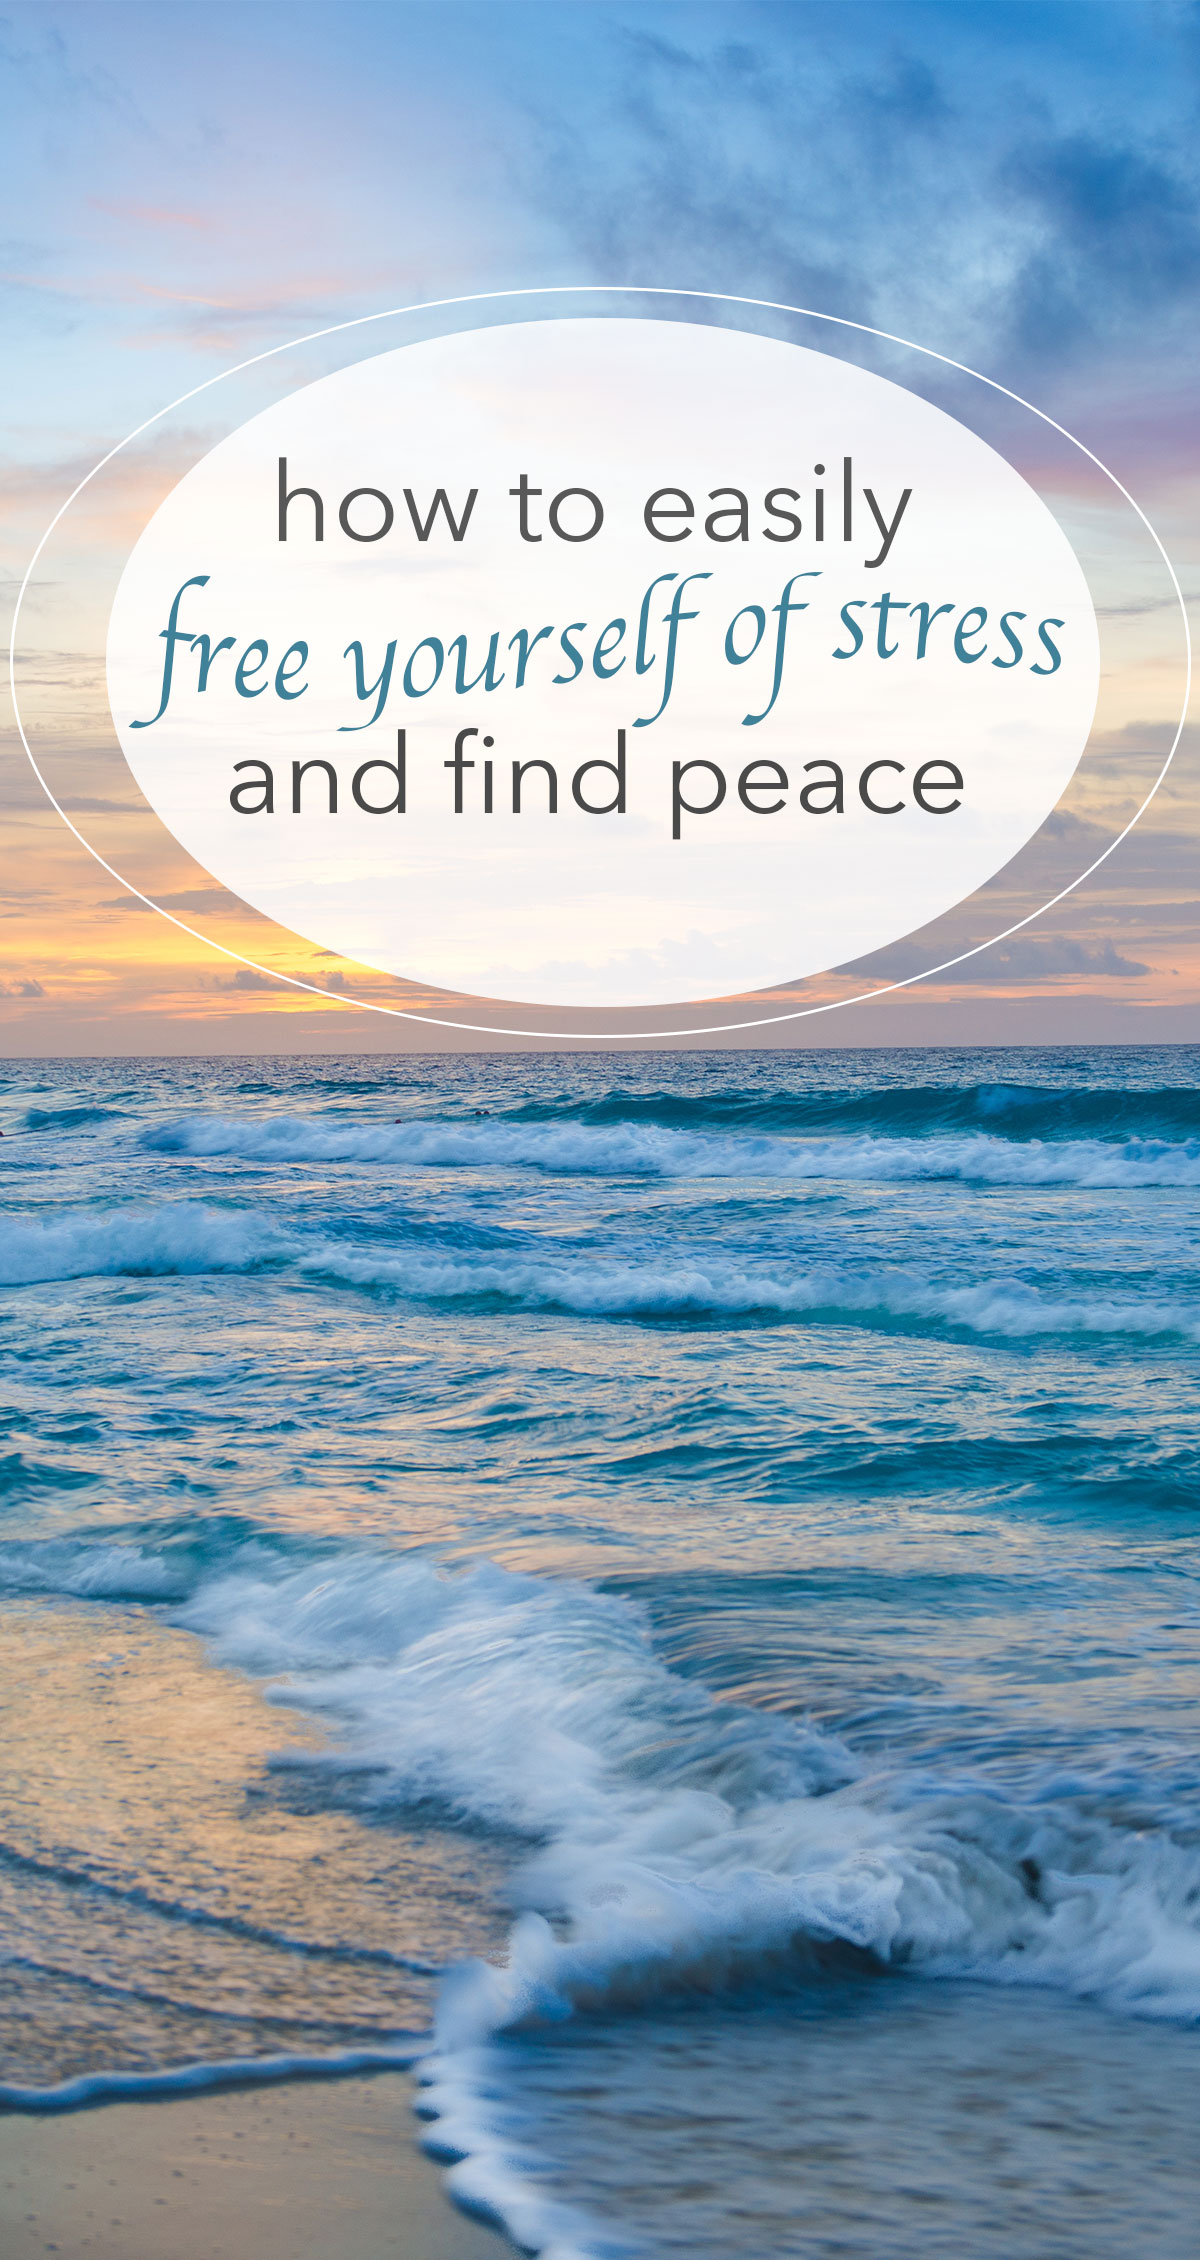 How to Easily Free Yourself of Stress and Find Peace Pin